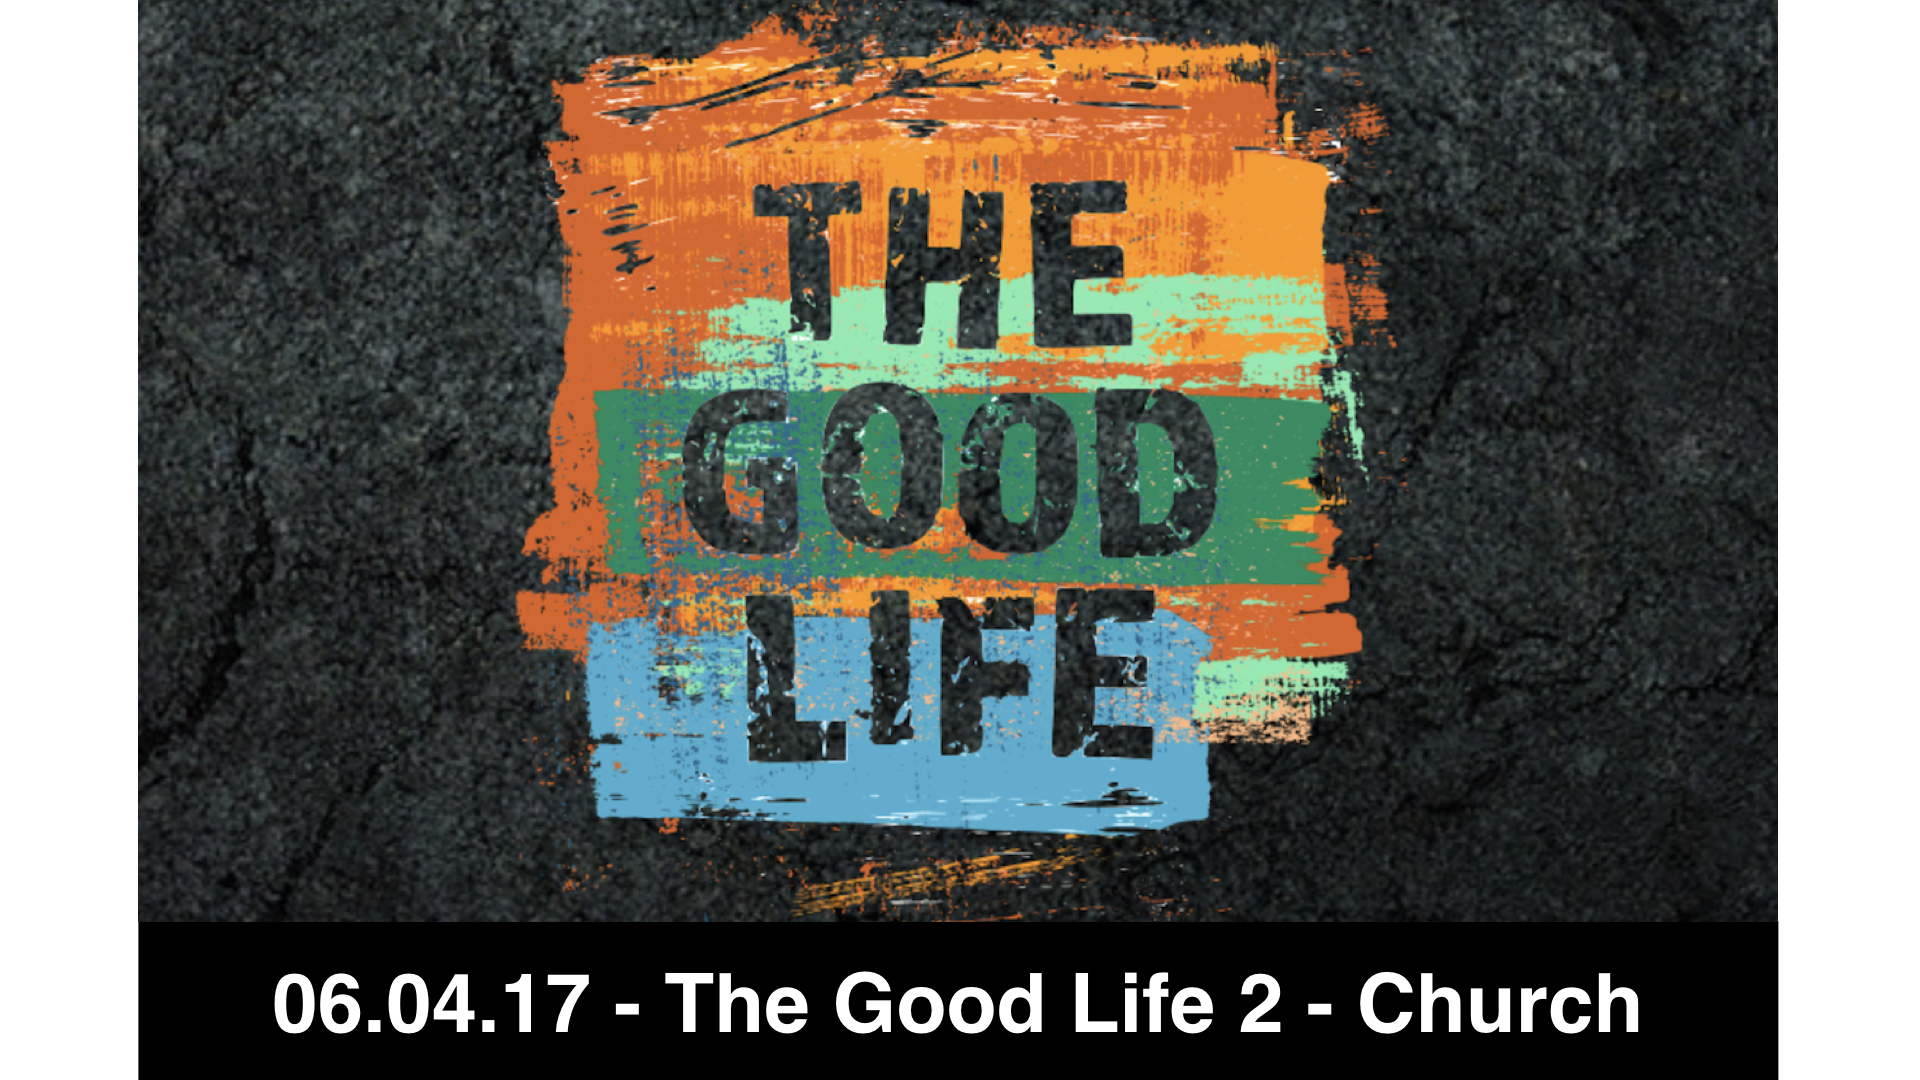 06.04.17 The Good Life 2 - Church